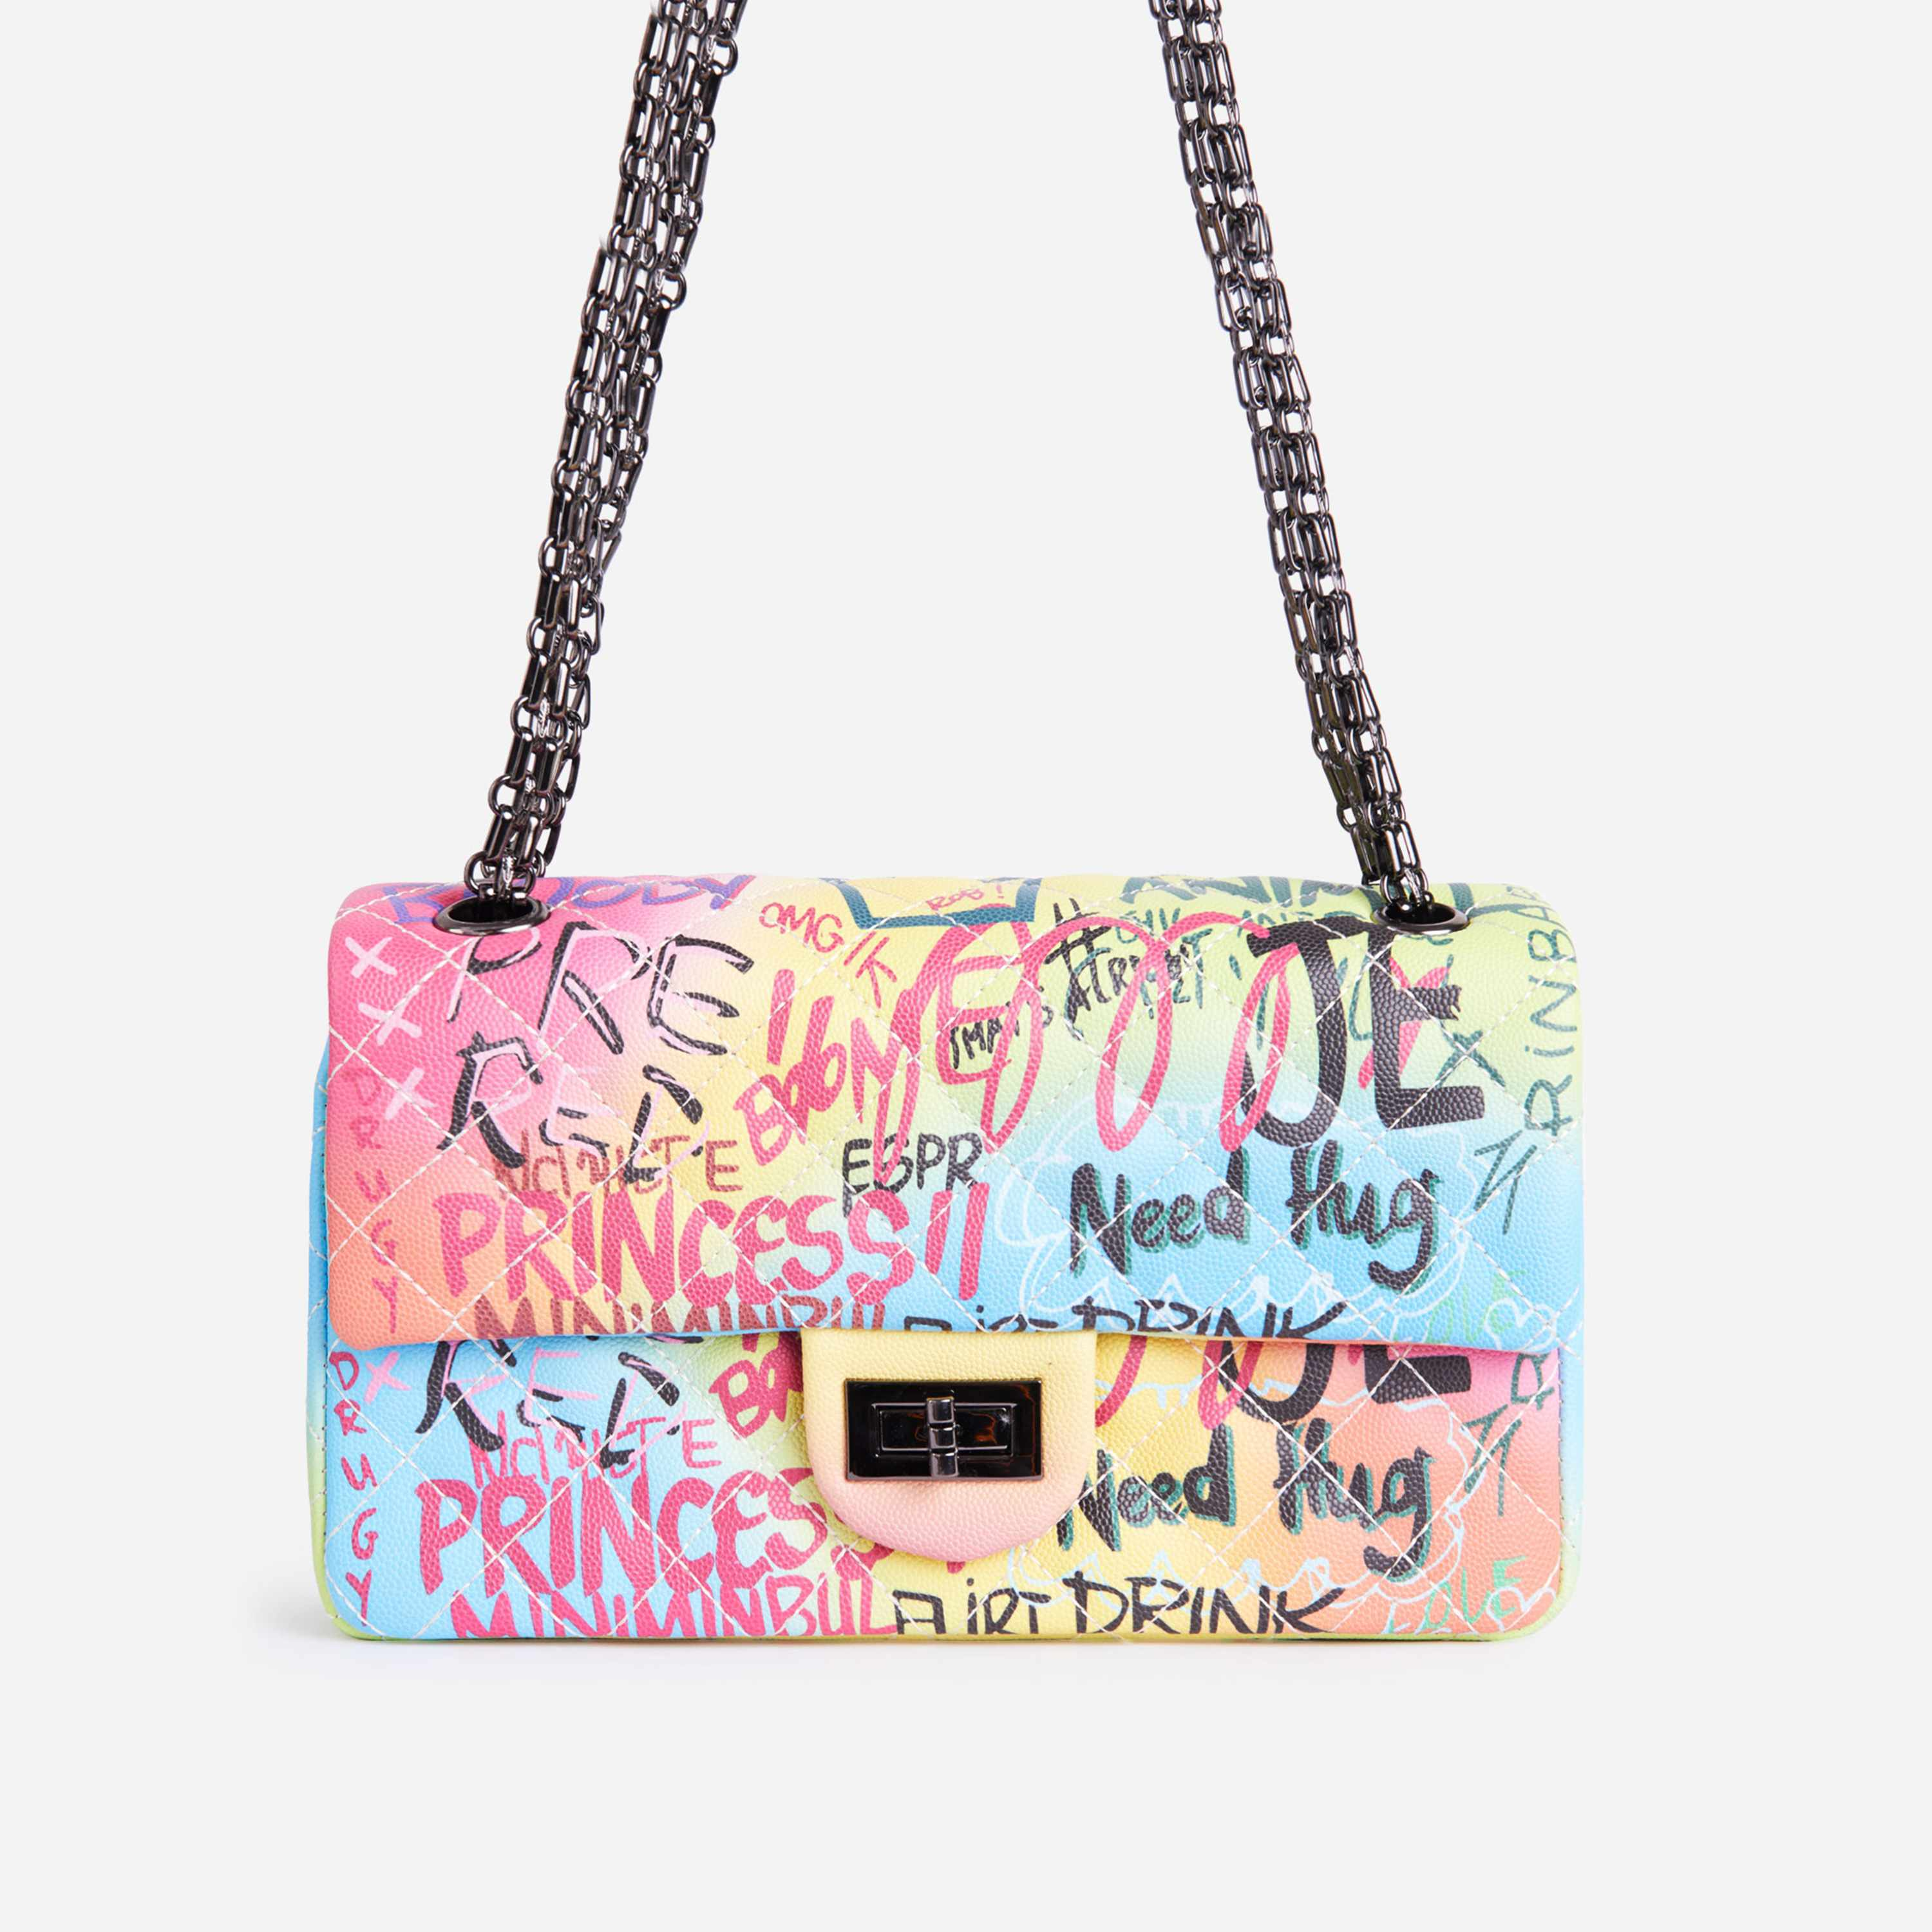 Ava Chain Detail Quilted Cross Body Bag In Multi Graffiti Print Faux Leather